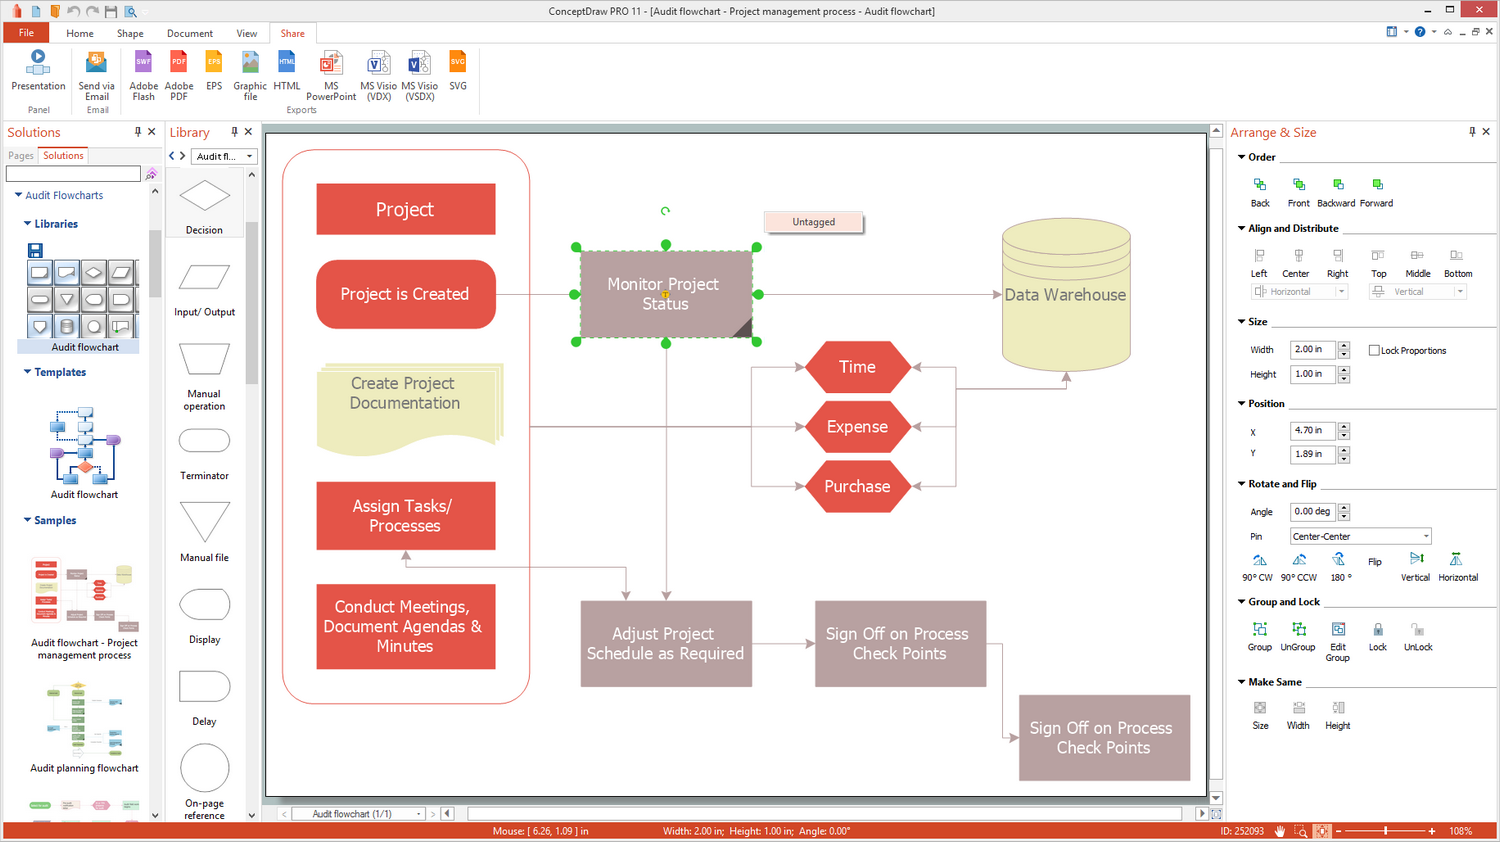 Audit Flowcharts Solution